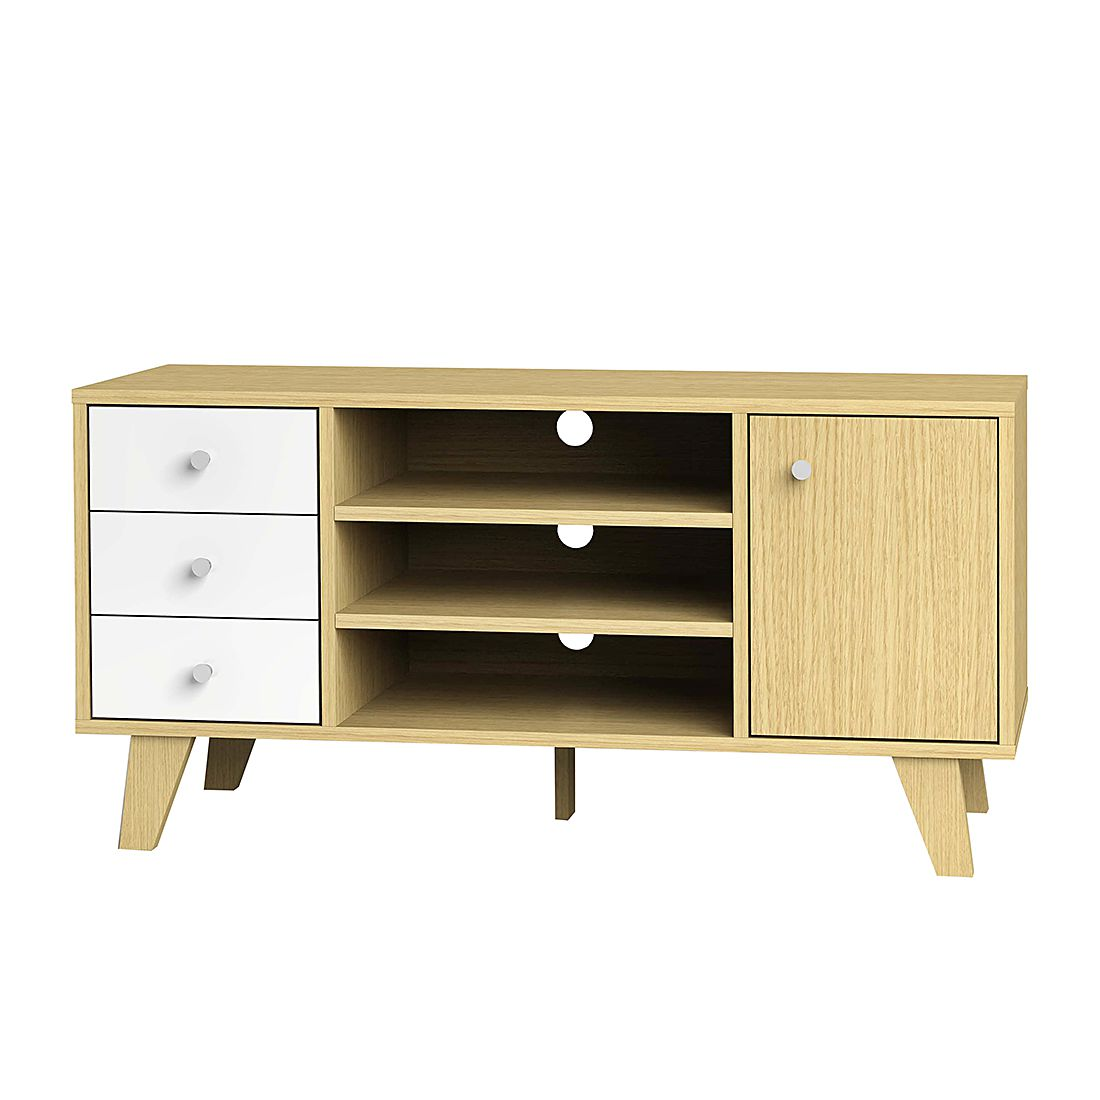 meuble tv meuble blanc tv hauteur 60 cm meuble blanc tv hauteur 60 cm trouvez meuble blanc tv. Black Bedroom Furniture Sets. Home Design Ideas